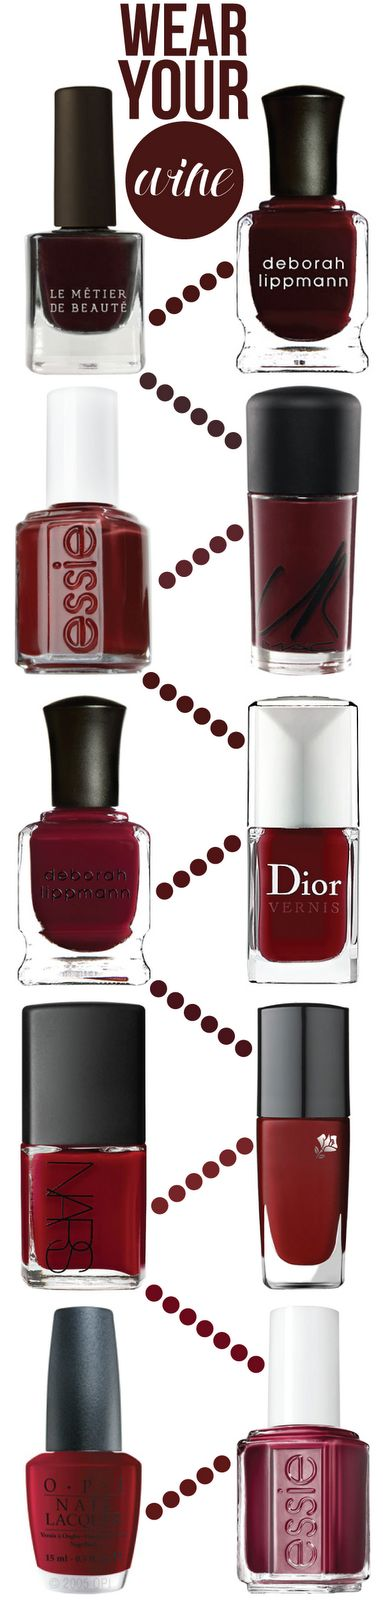 wear your wine: 10 nail shades for fall  first row: Le Métier de Béaute Kona + Deborah Lippmann Just Walk Away Renee  second row: Essie Up's + M.A.C Underfire Red  third row: Deborah Lippmann Lady is a Tramp + Dior Massai Red  fourth row: NARS Jungle Red + Lancôme Madame Tulipe  fifth row: OPI Got the Blues for Red + Essie Skirting the Issue